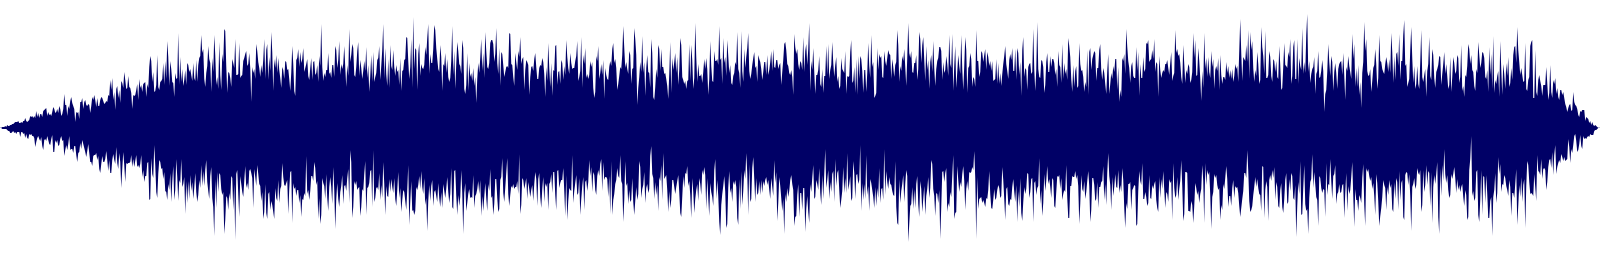 waveform of track #146080